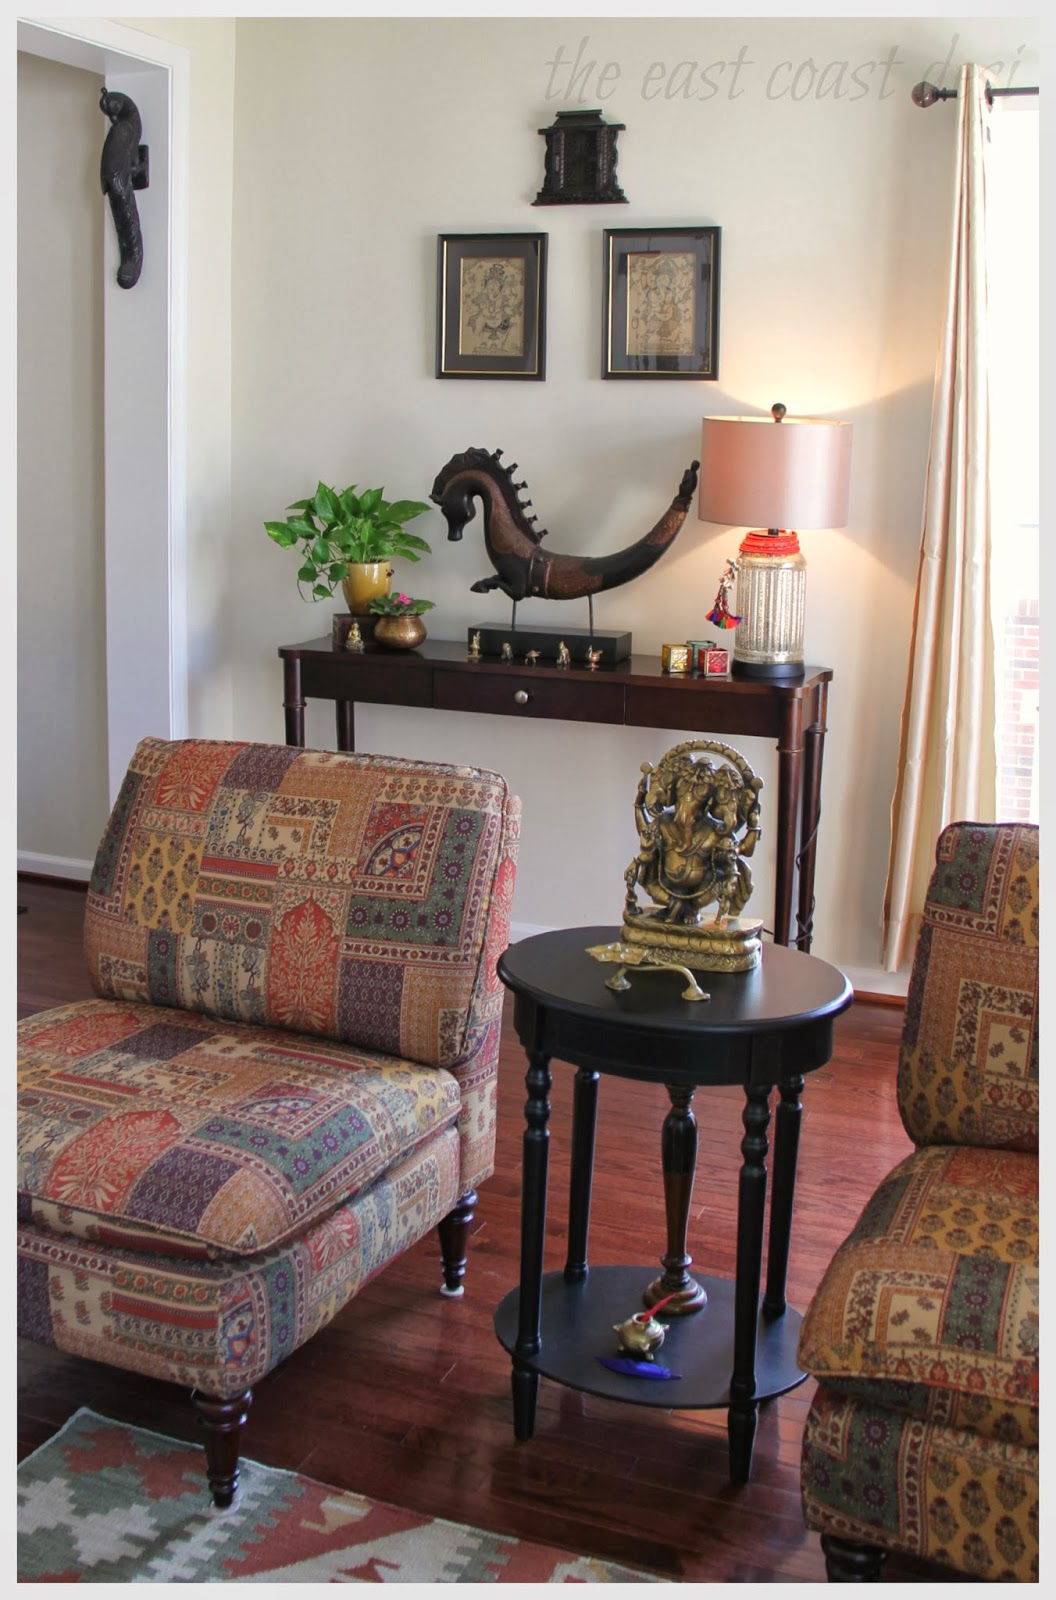 The east coast desi my living room a reflection of india for Indian home interior living room